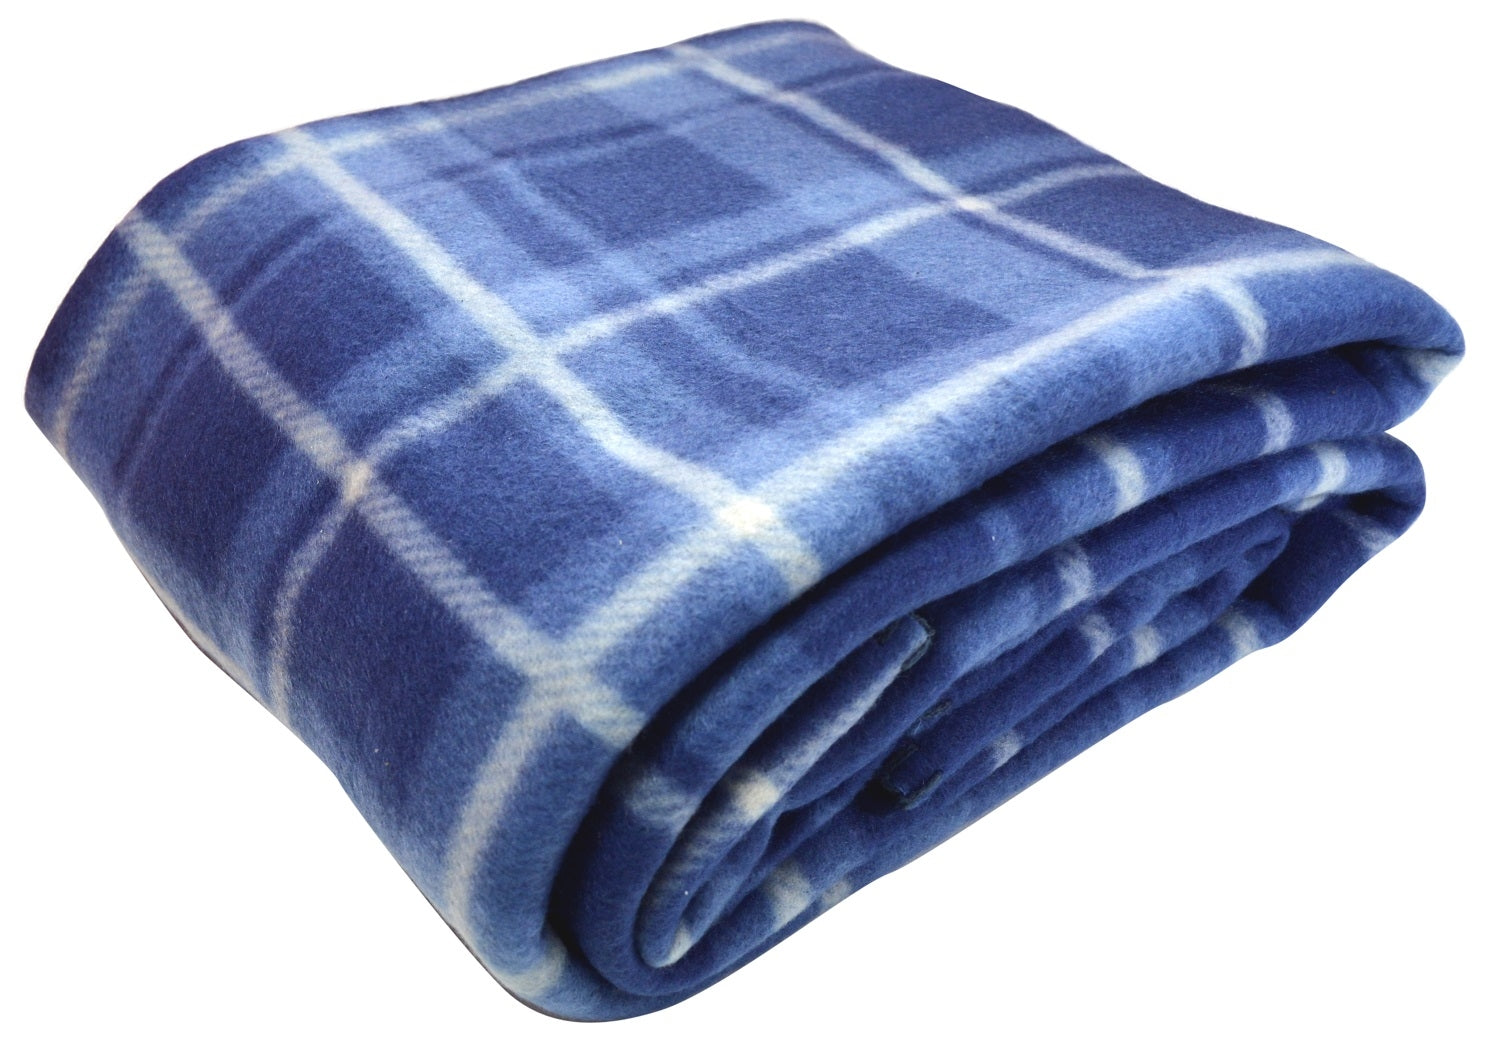 Blue Tartan travel blanket